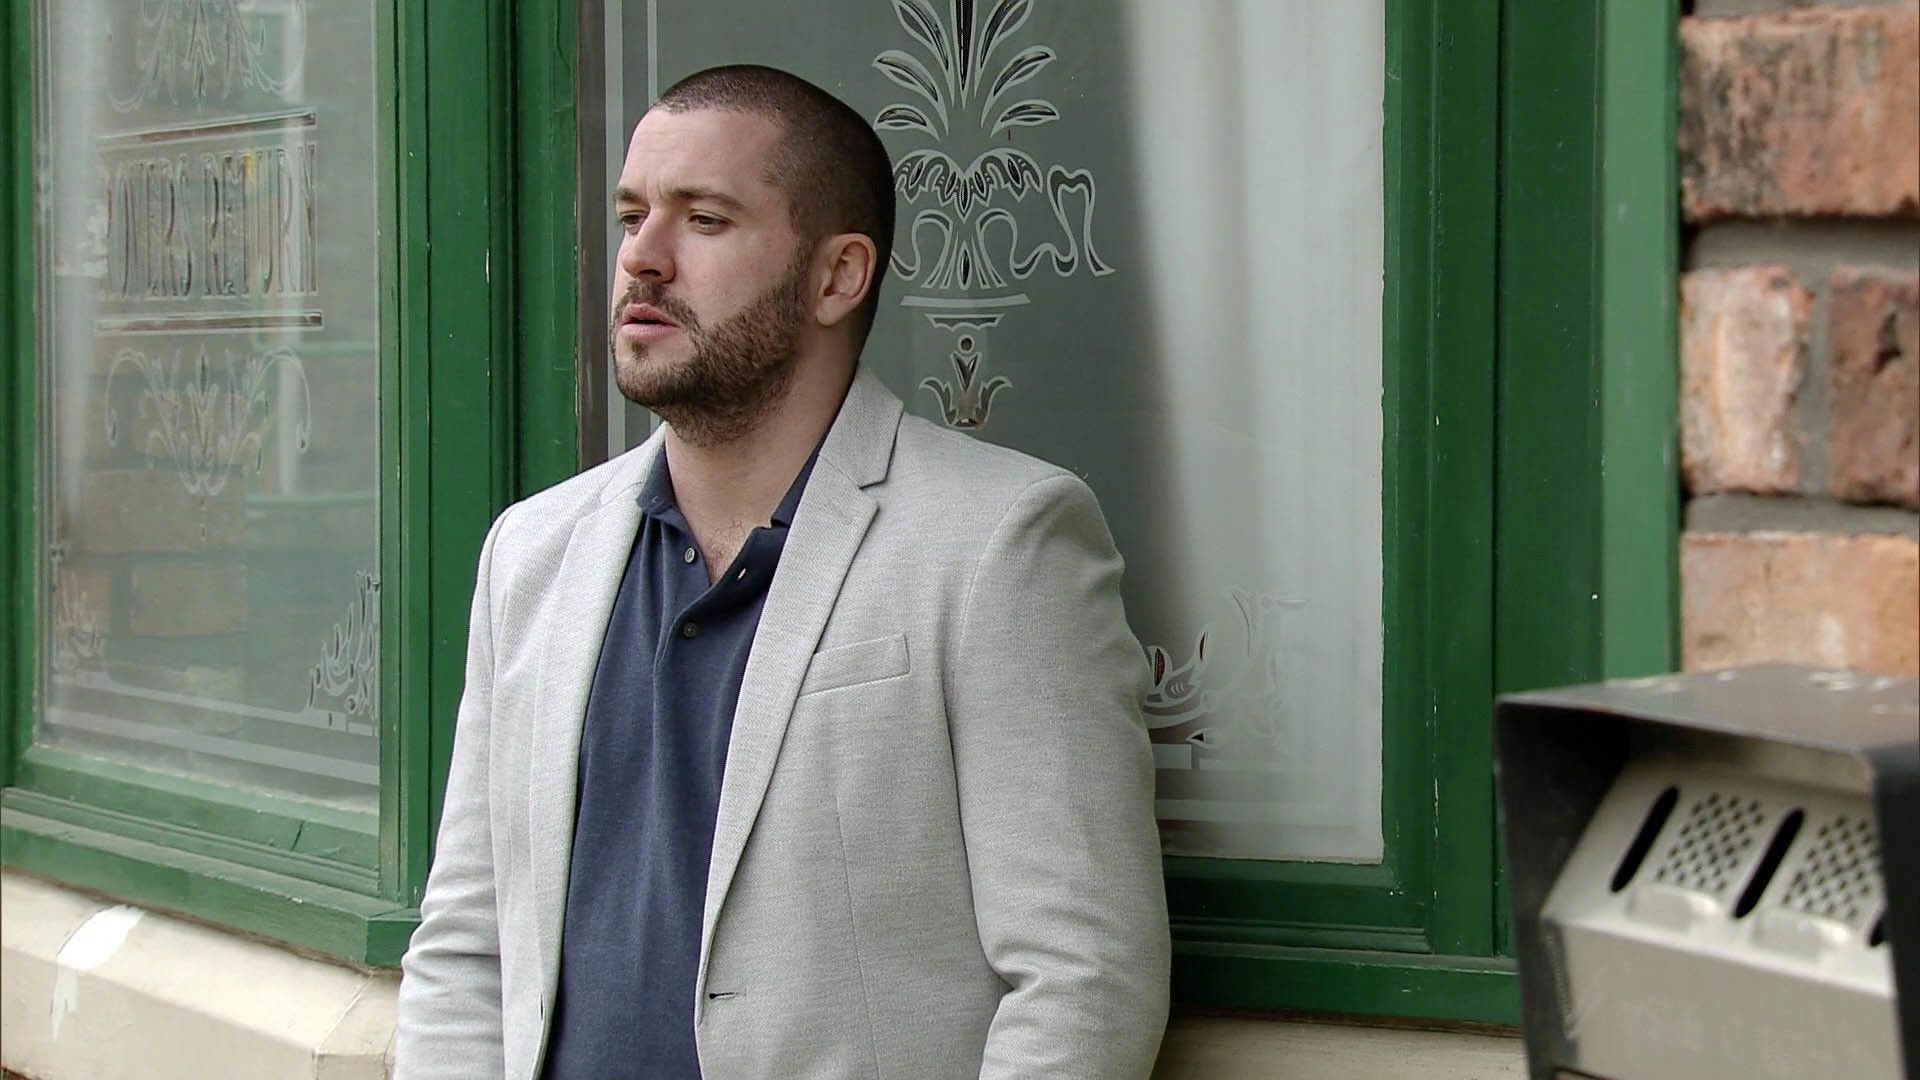 Coronation Street's Shayne Ward Has Been 'Inundated' With Messages About Suicide